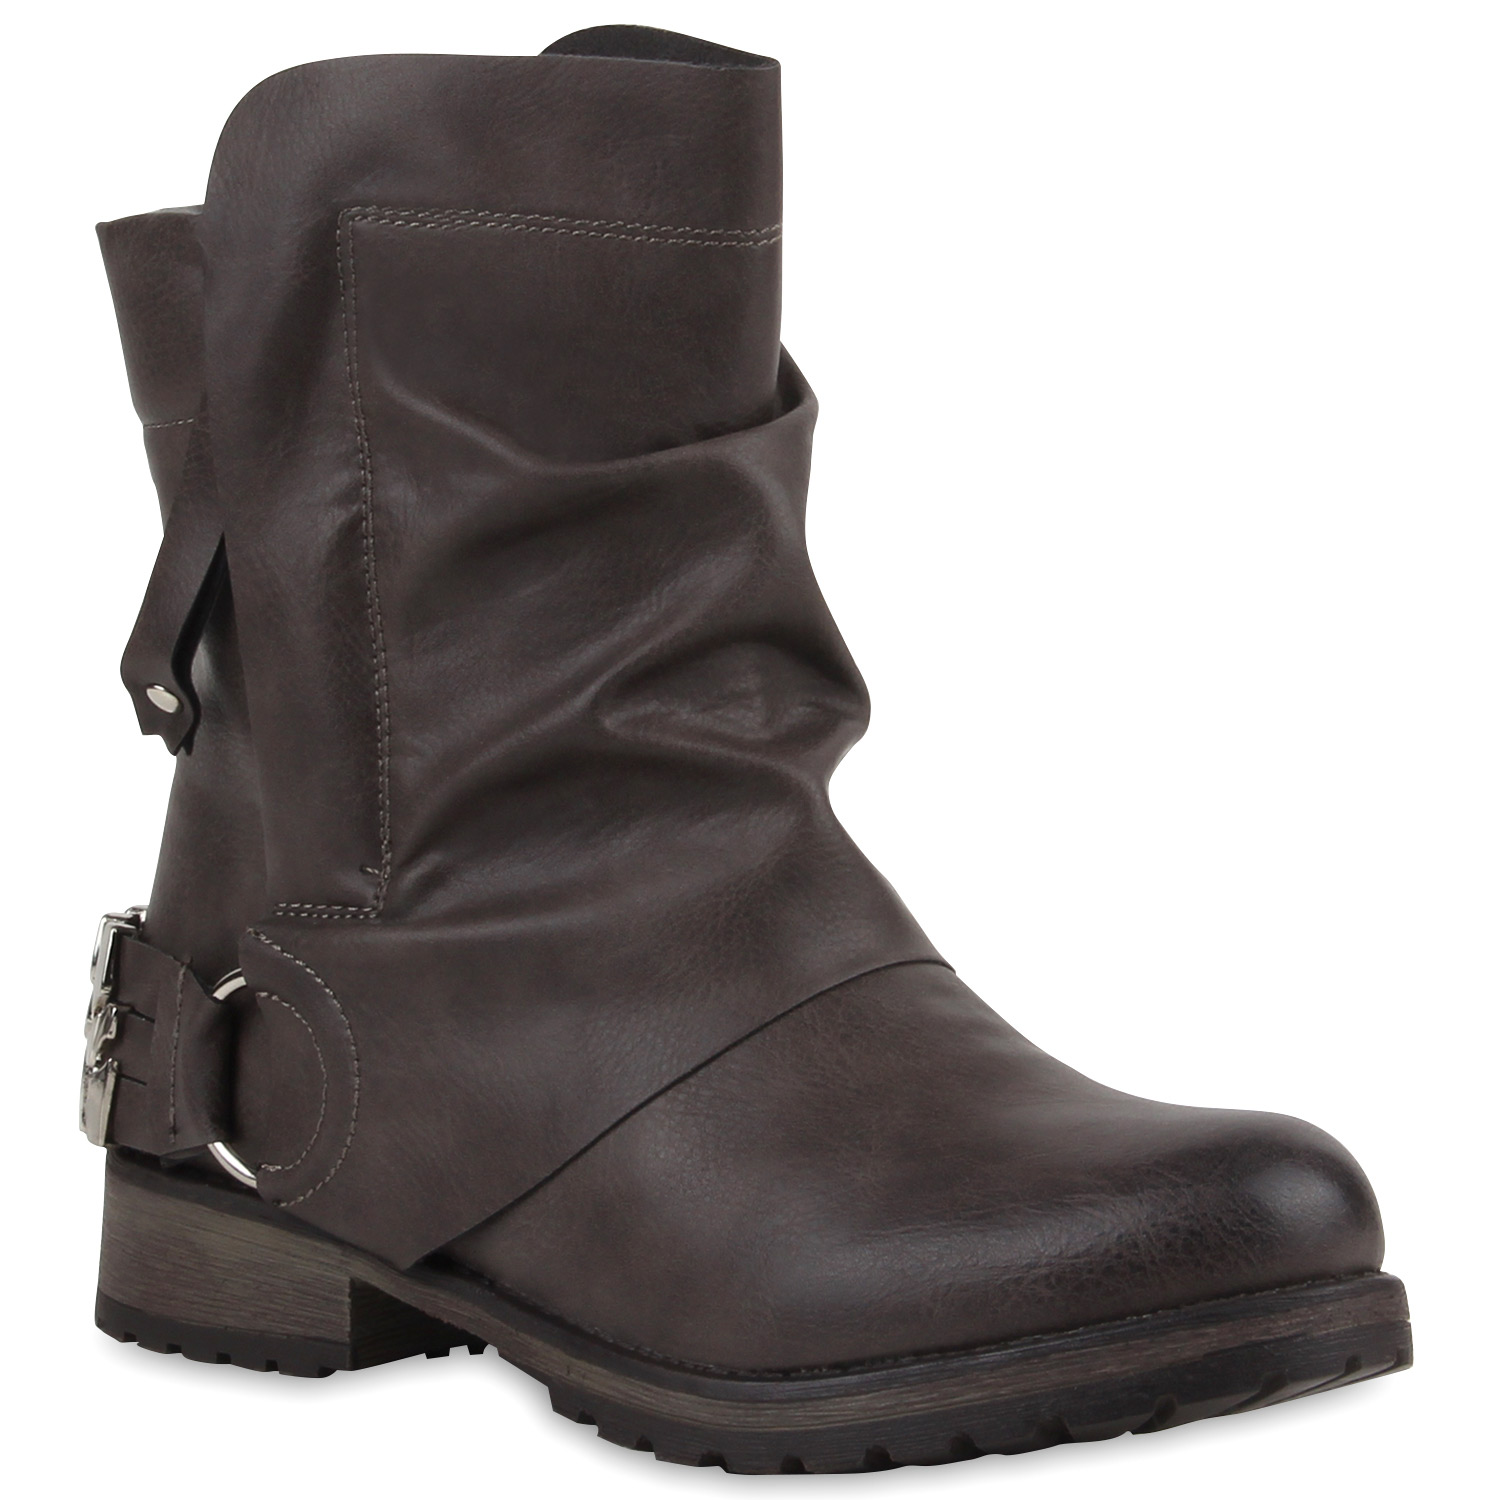 damen stiefeletten biker boots schwarze stiefel 77314 schuhe ebay. Black Bedroom Furniture Sets. Home Design Ideas